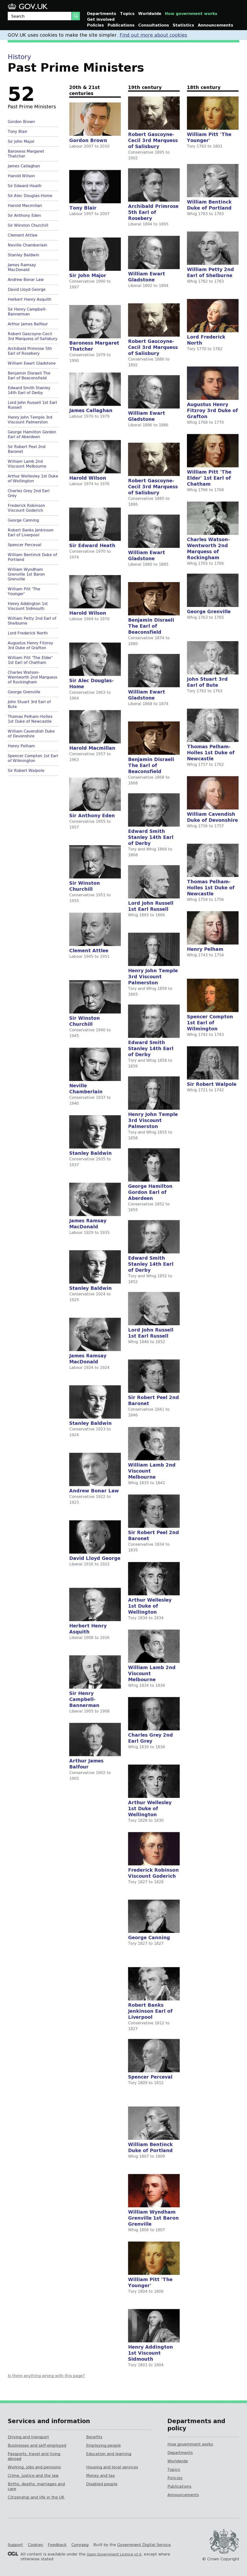 The website 'https://www.gov.uk/government/history/past-prime-ministers' courtesy of @Pinstamatic (http://pinstamatic.com)